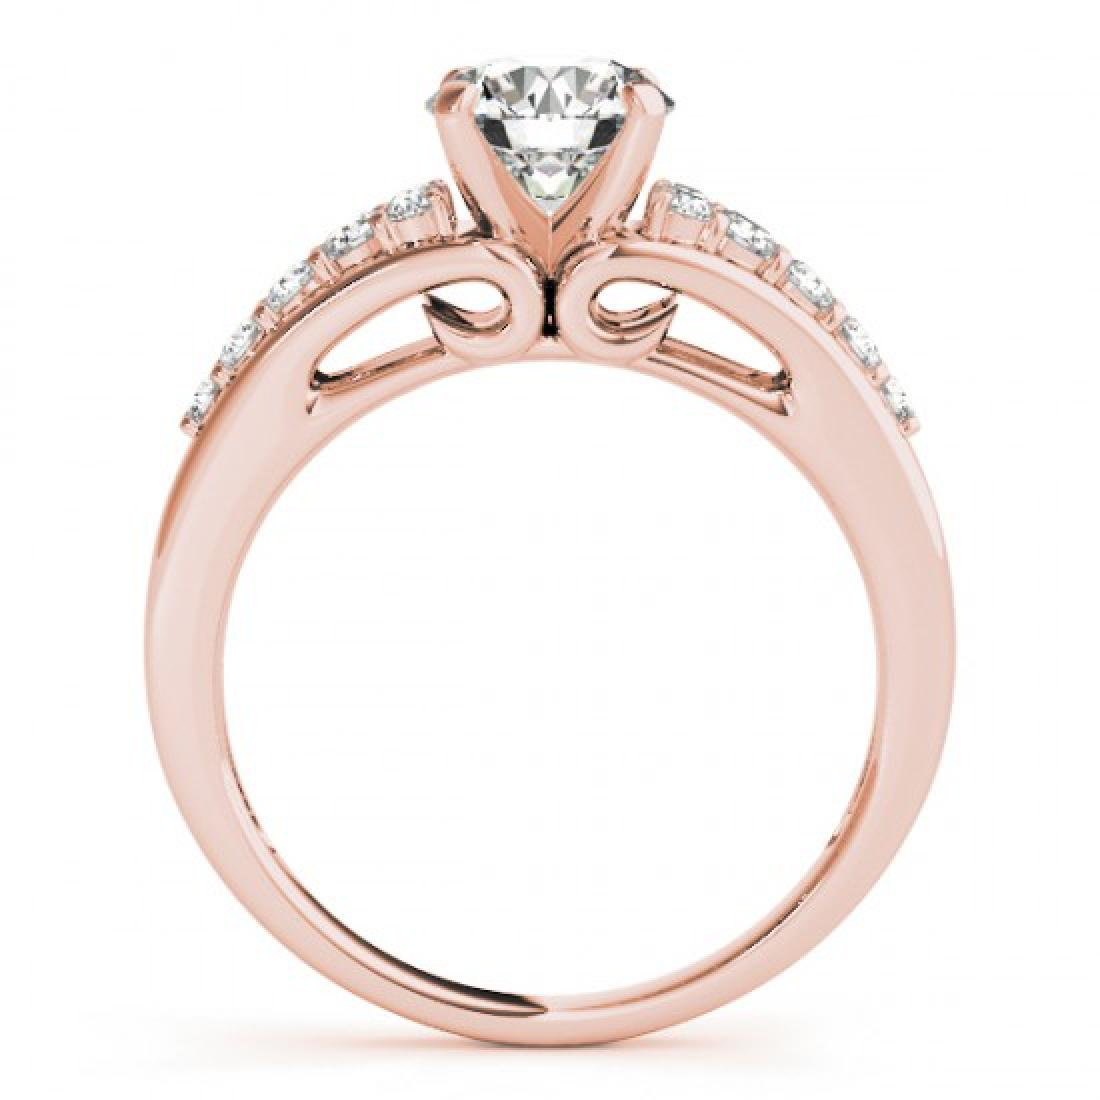 1.15 CTW Certified VS/SI Diamond Solitaire Ring 14K - 2